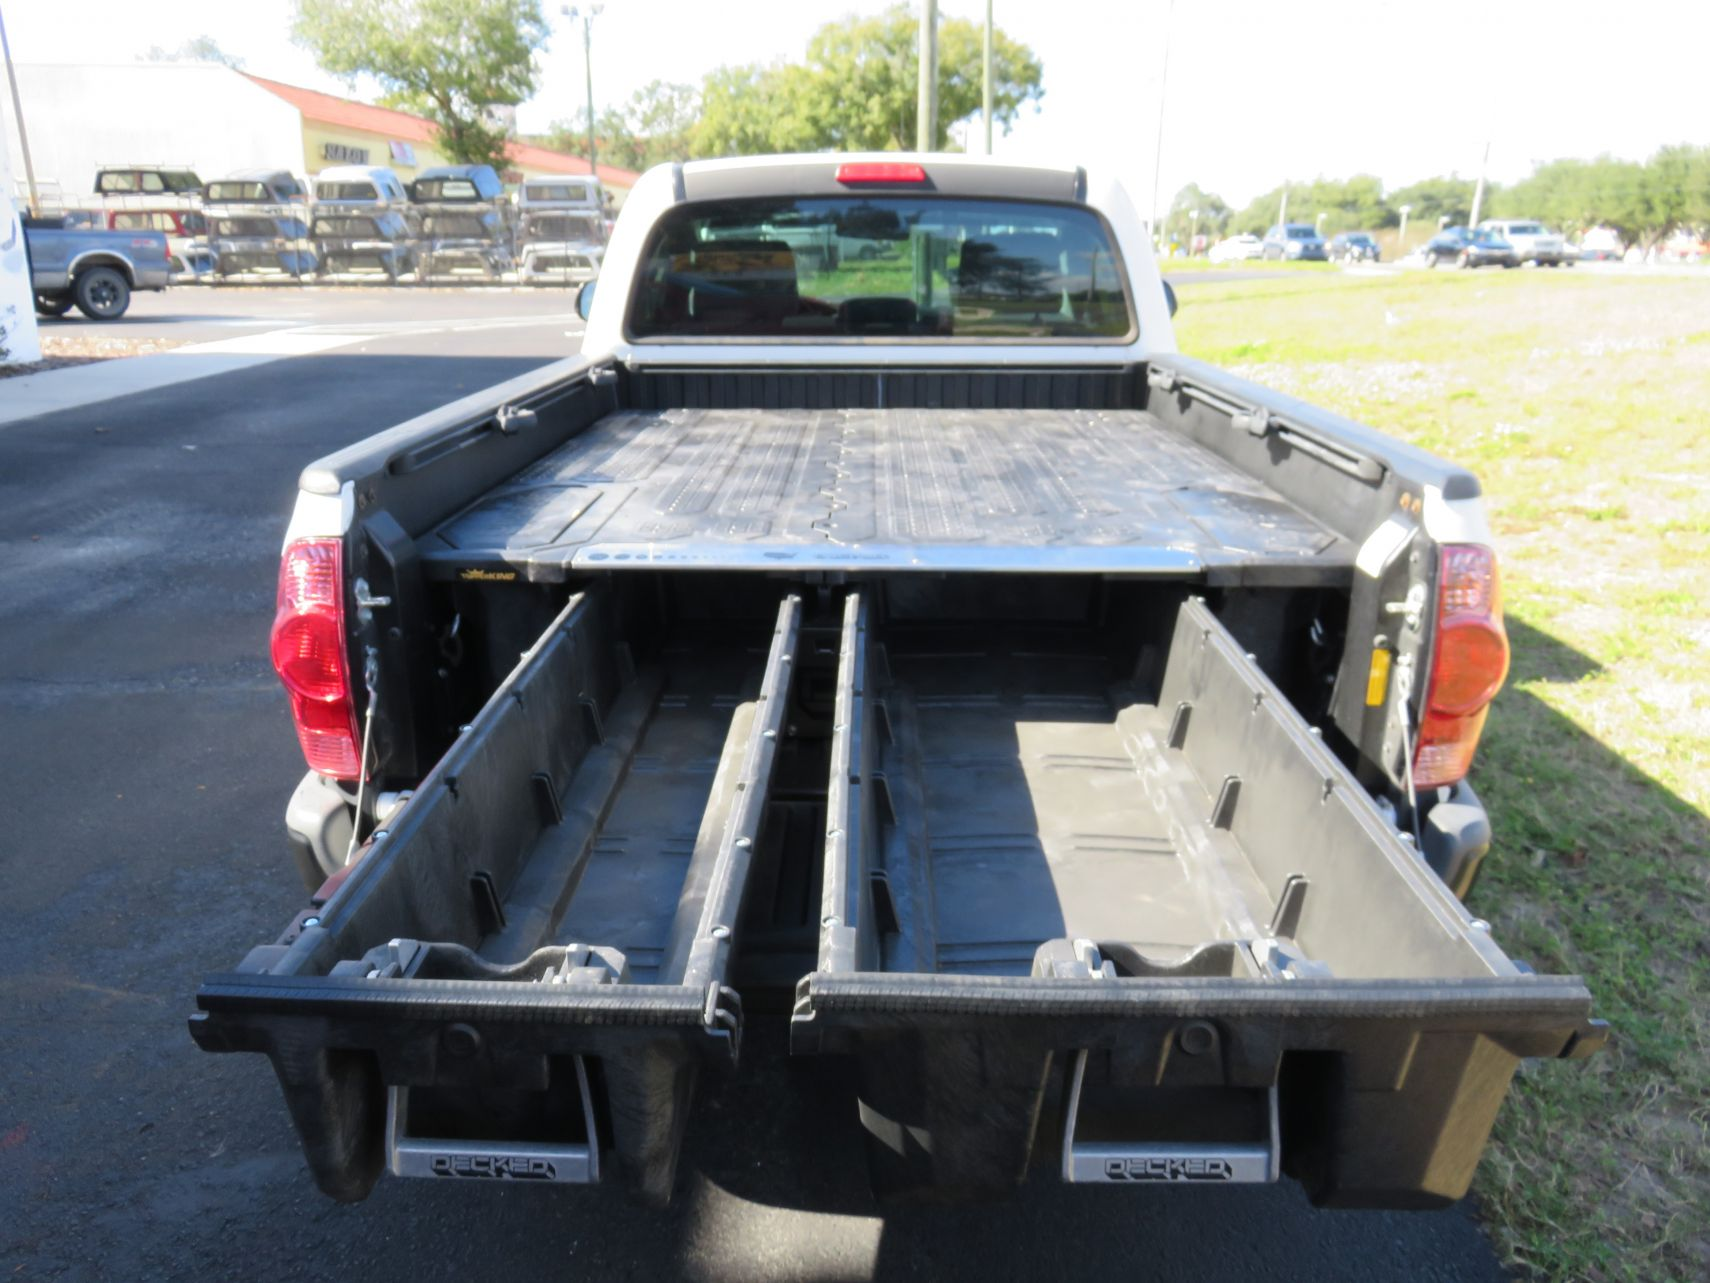 2010 Toyota Tacoma Decked by TopperKING in Brandon, FL 813-689-2449 or Clearwater, FL 727-530-9066. Call today to start on your truck!